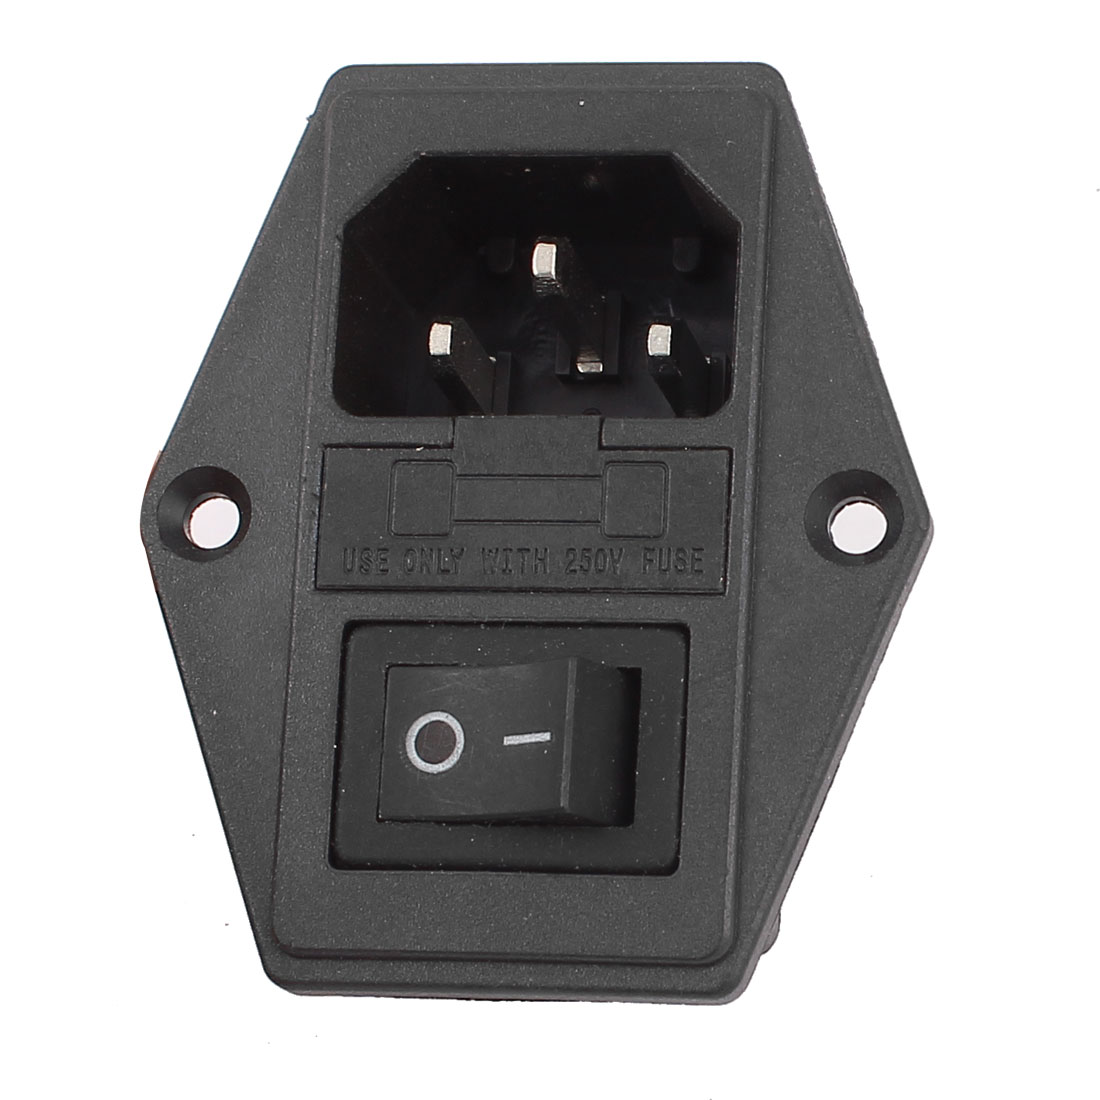 IEC320 C14 AC 250V 15A Black Rocker Switch Power Inlet Connector w Fuse Holder